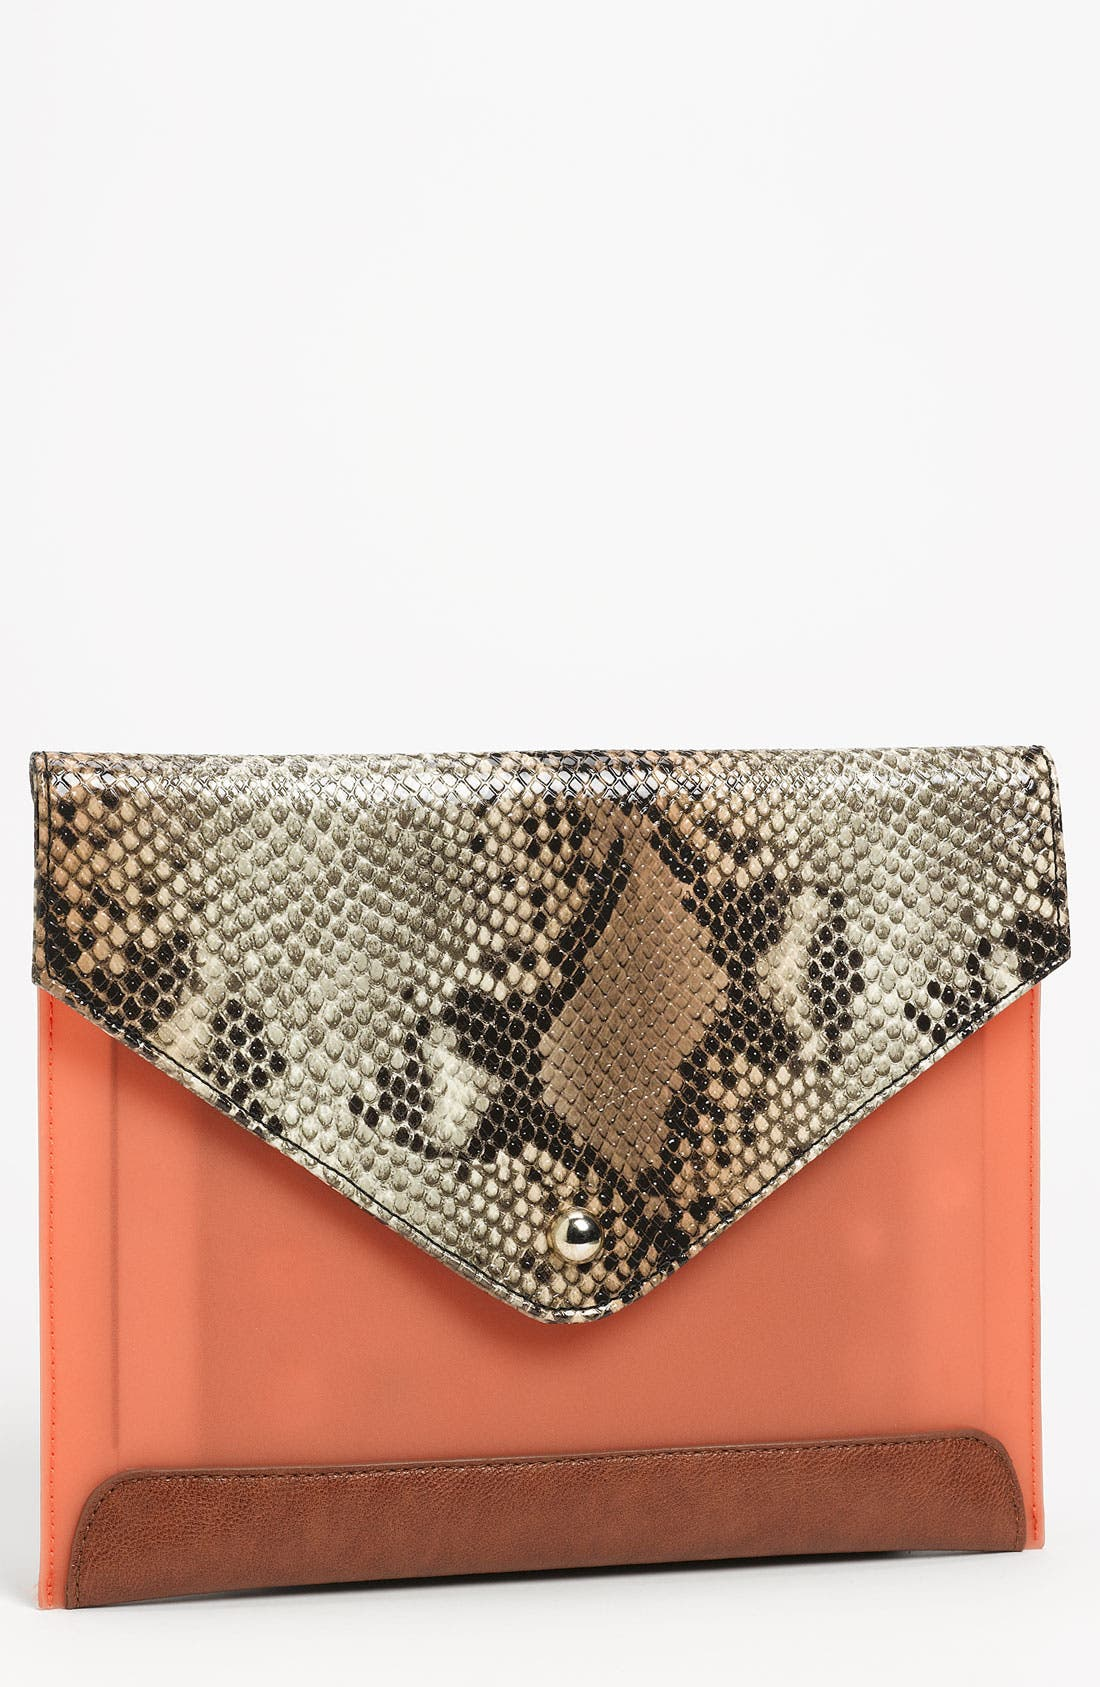 Alternate Image 1 Selected - Danielle Nicole 'Sienna' Envelope Clutch